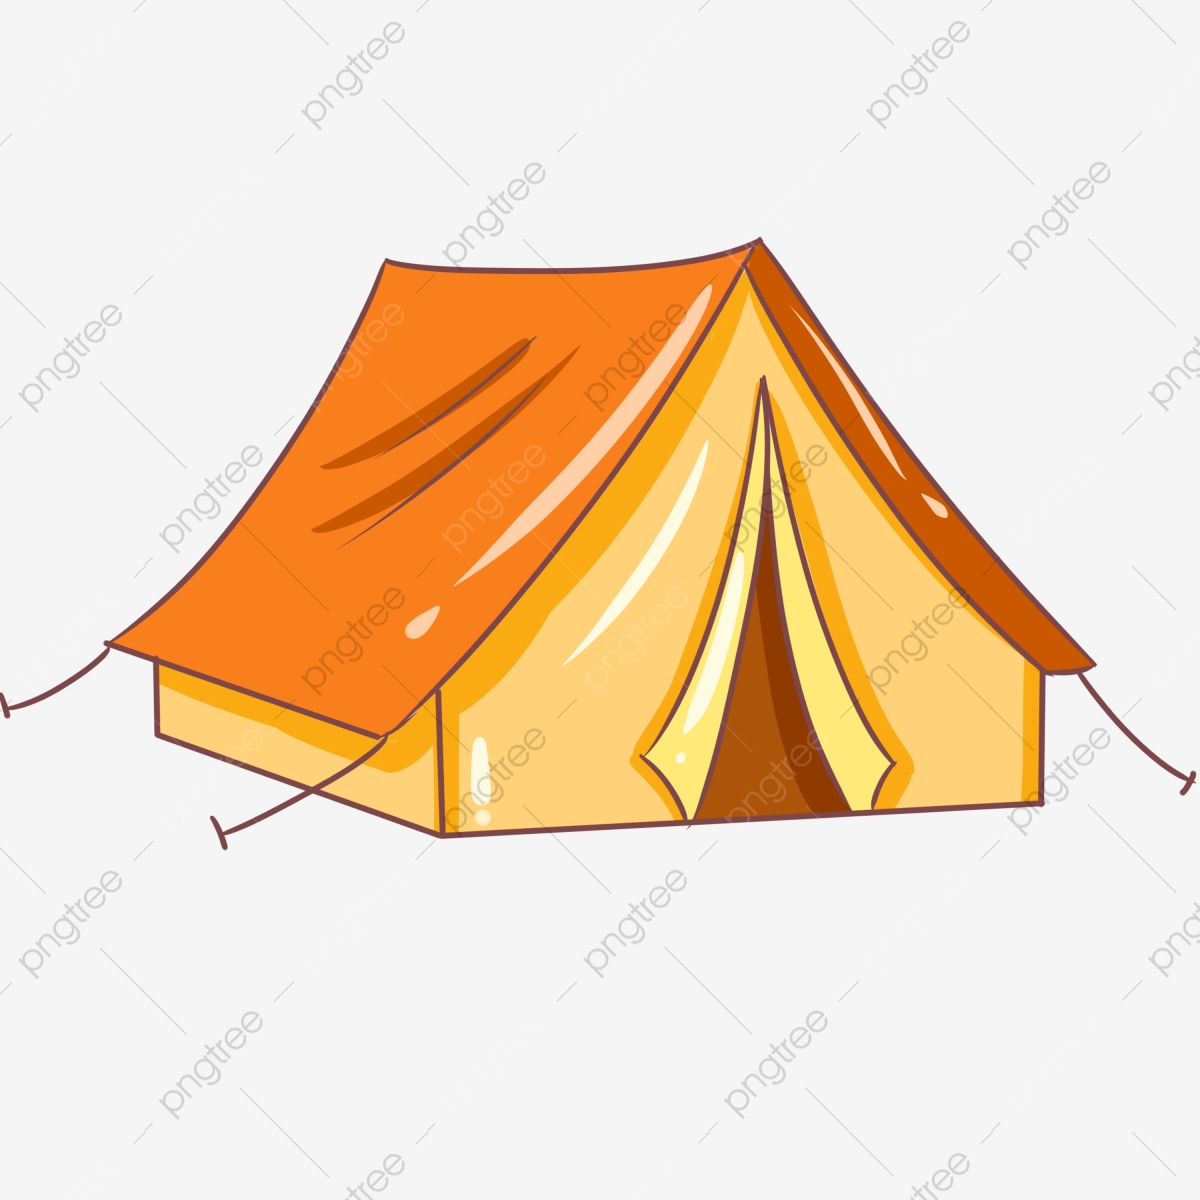 Tent Drawing Png - Drawing Tent, Tent Clipart, Tent, Lodgings PNG Transparent Clipart ...